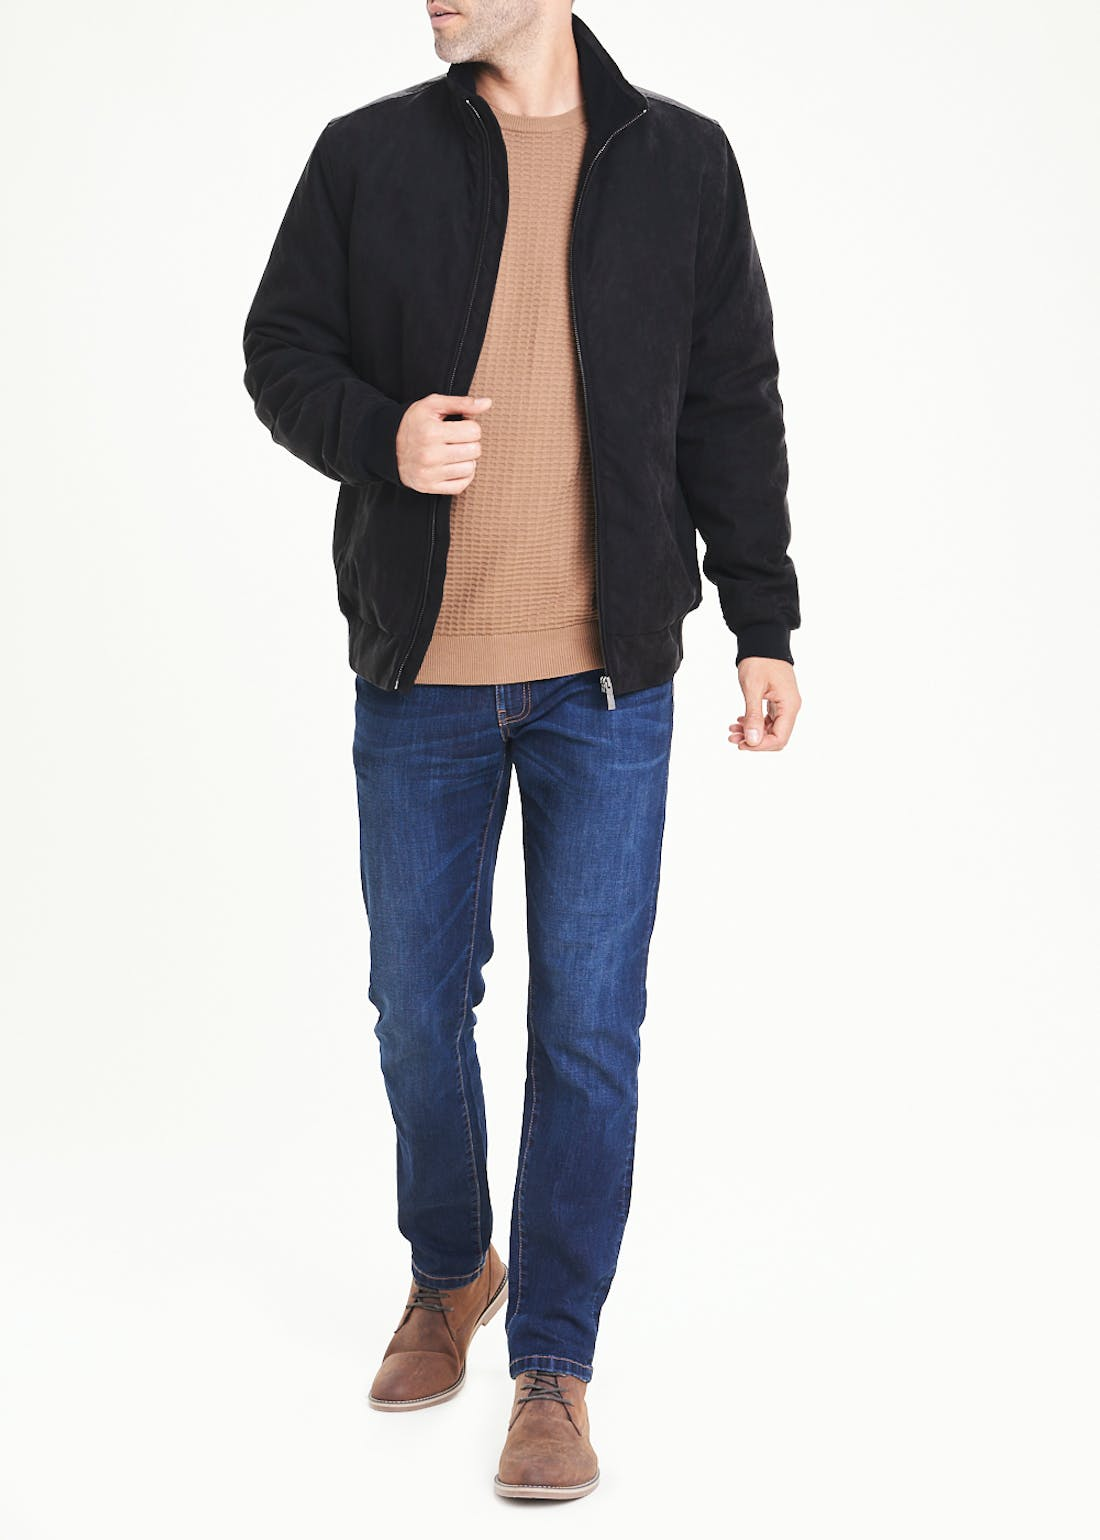 Lincoln Charcoal Faux Suede Jacket